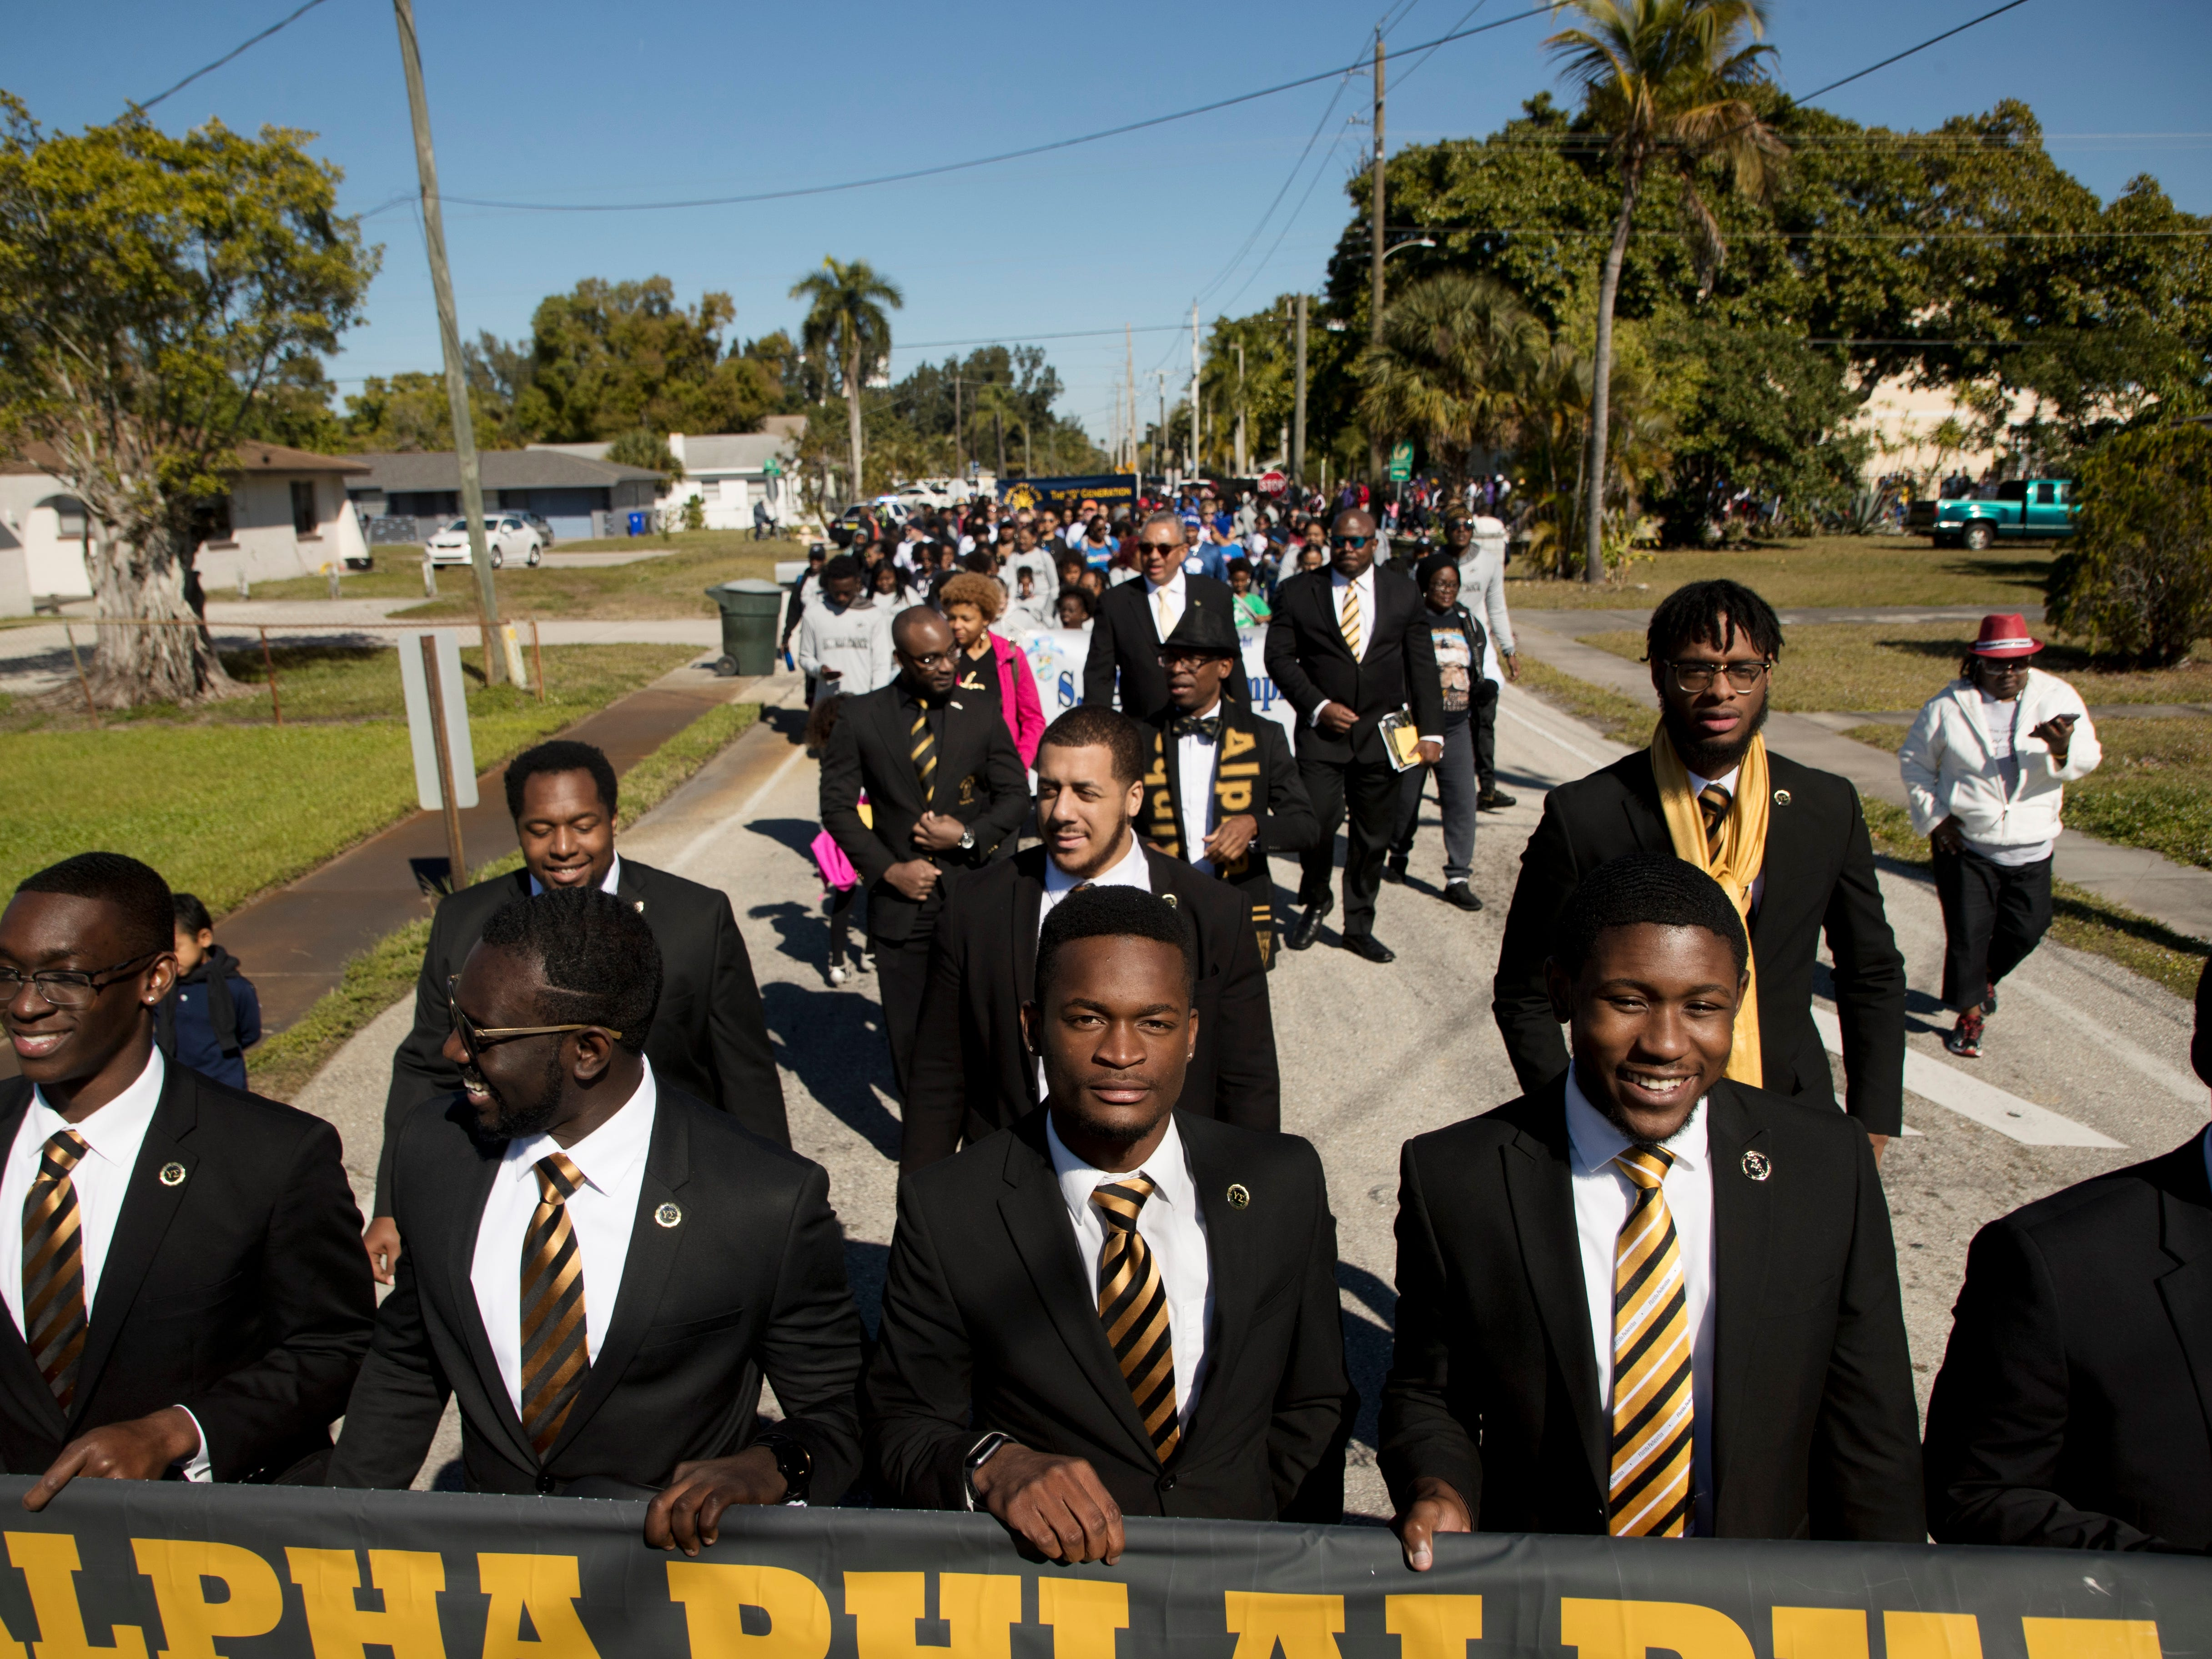 Members of the Alpha Phi Alpha Fraternity lead the annual Martin Luther King Jr. Commemorative March in Fort Myers, Fla.